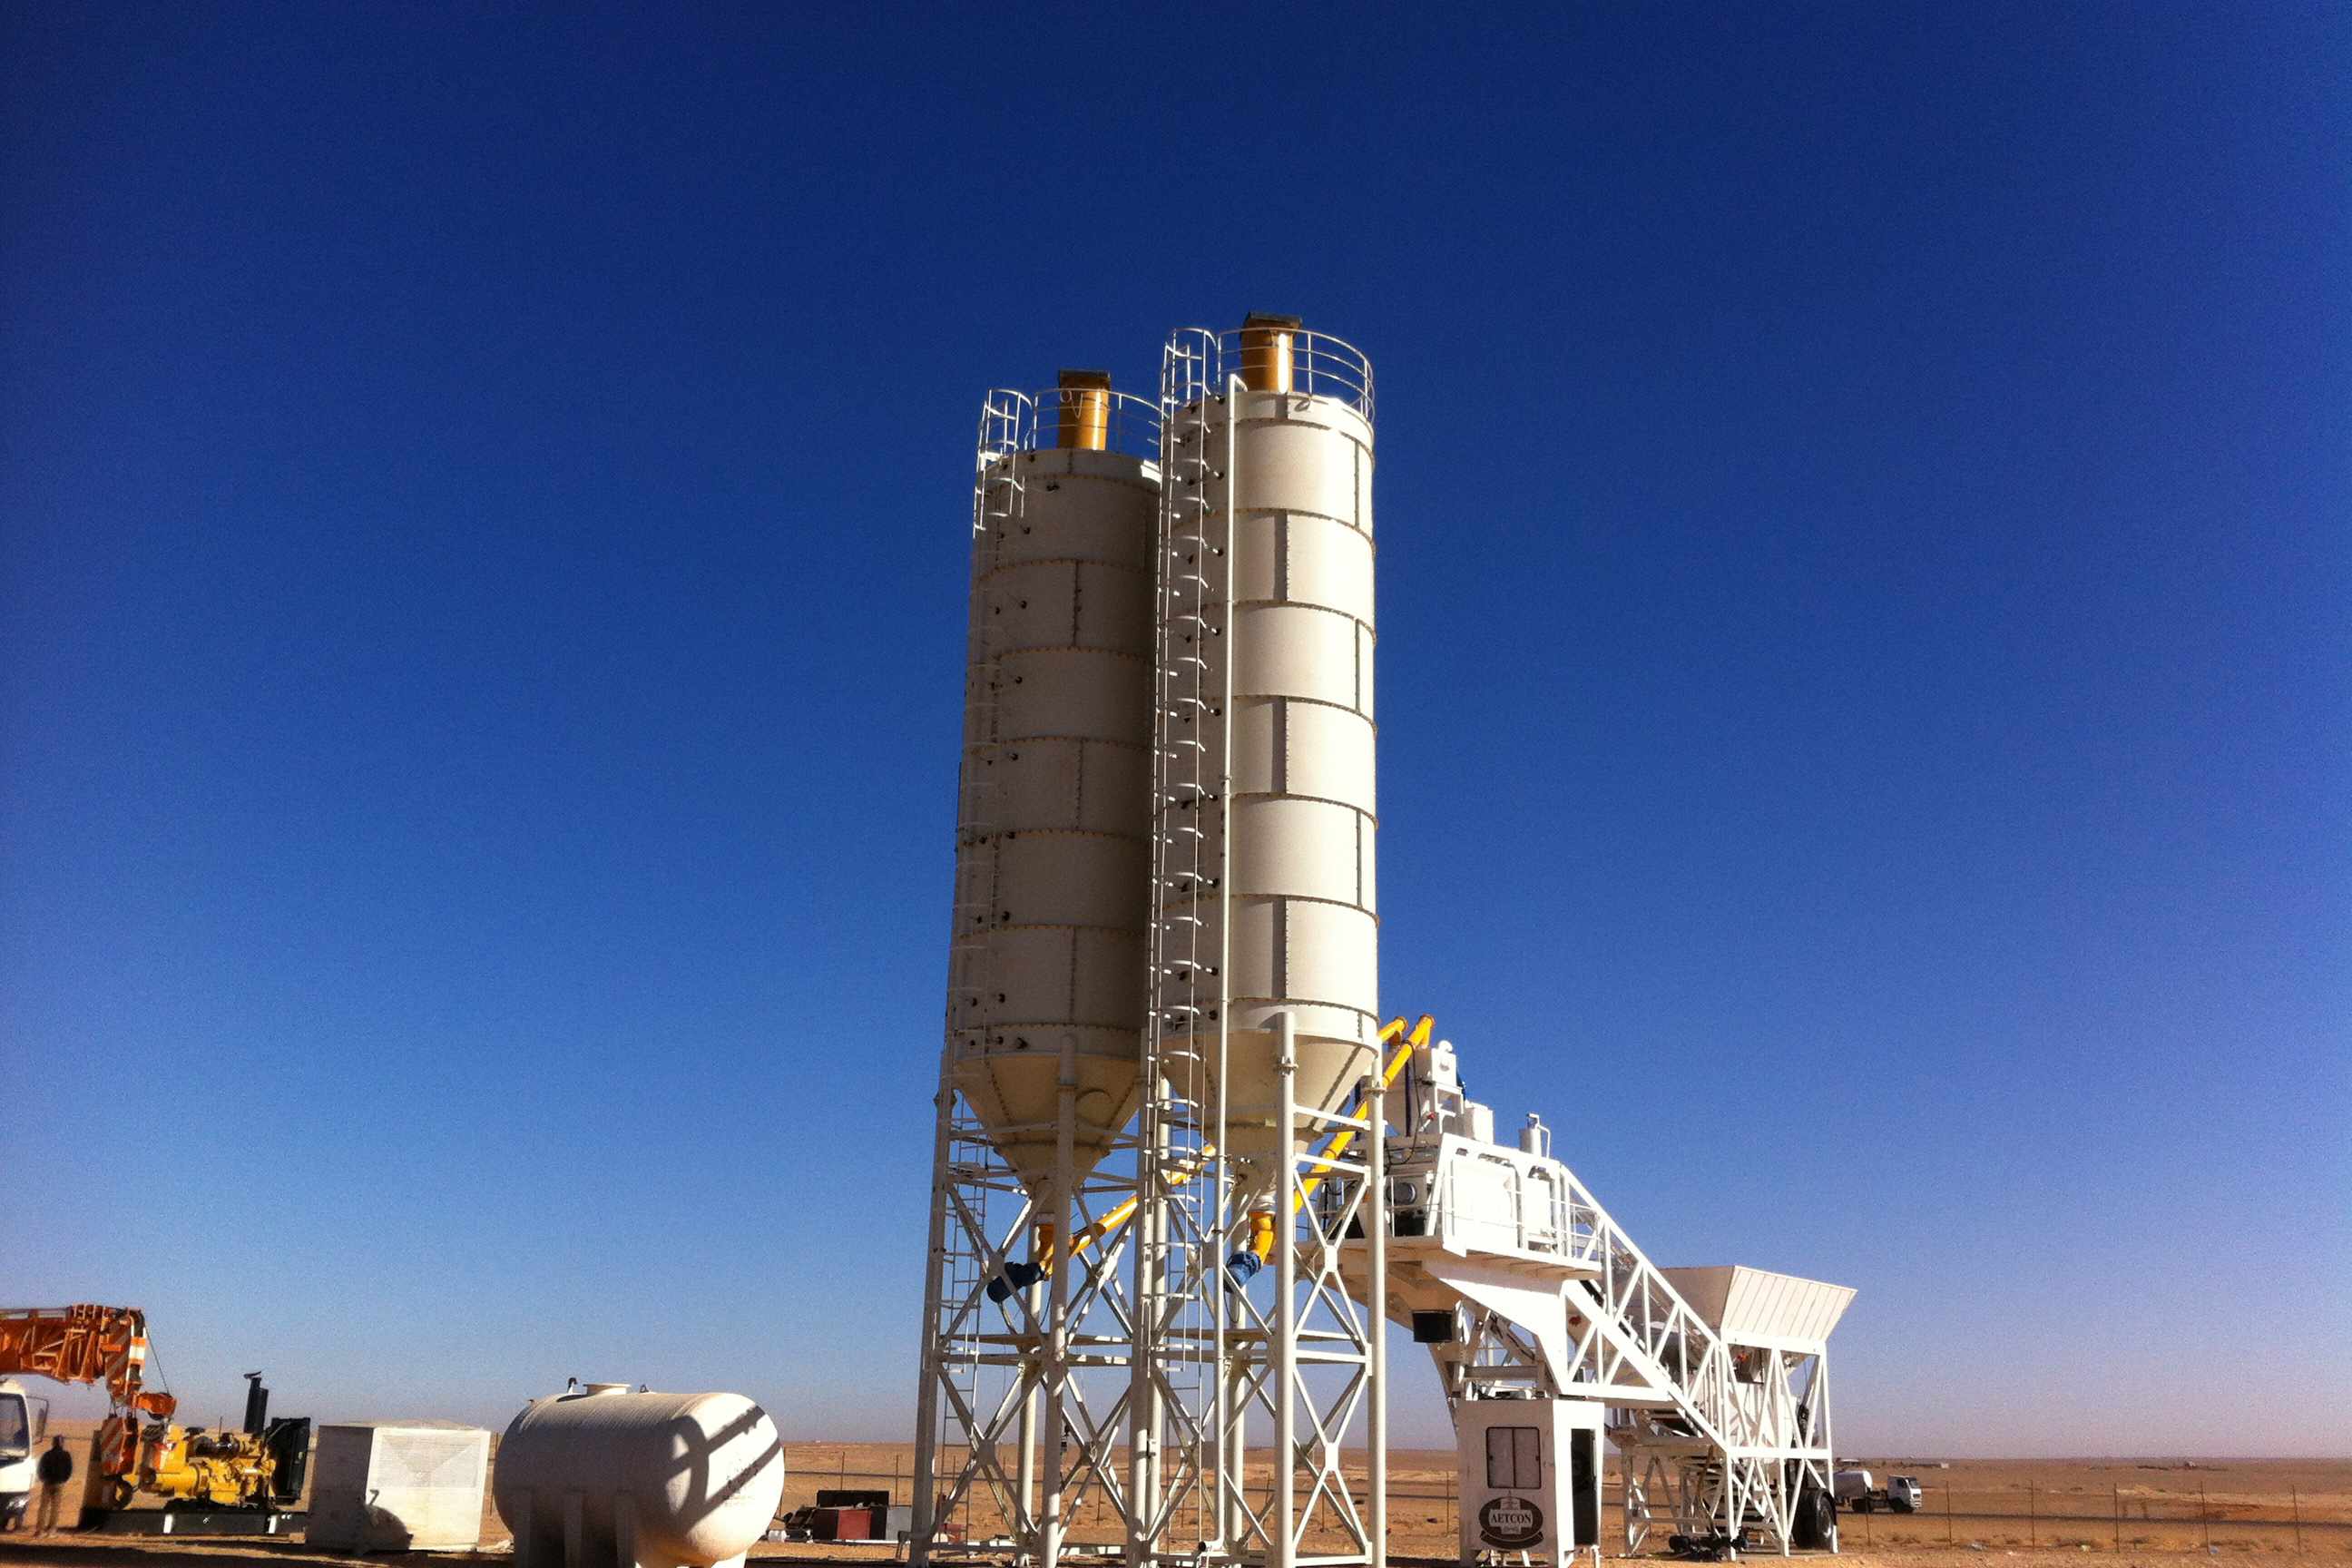 It is the optimal time to buy concrete batching plant with lowest price